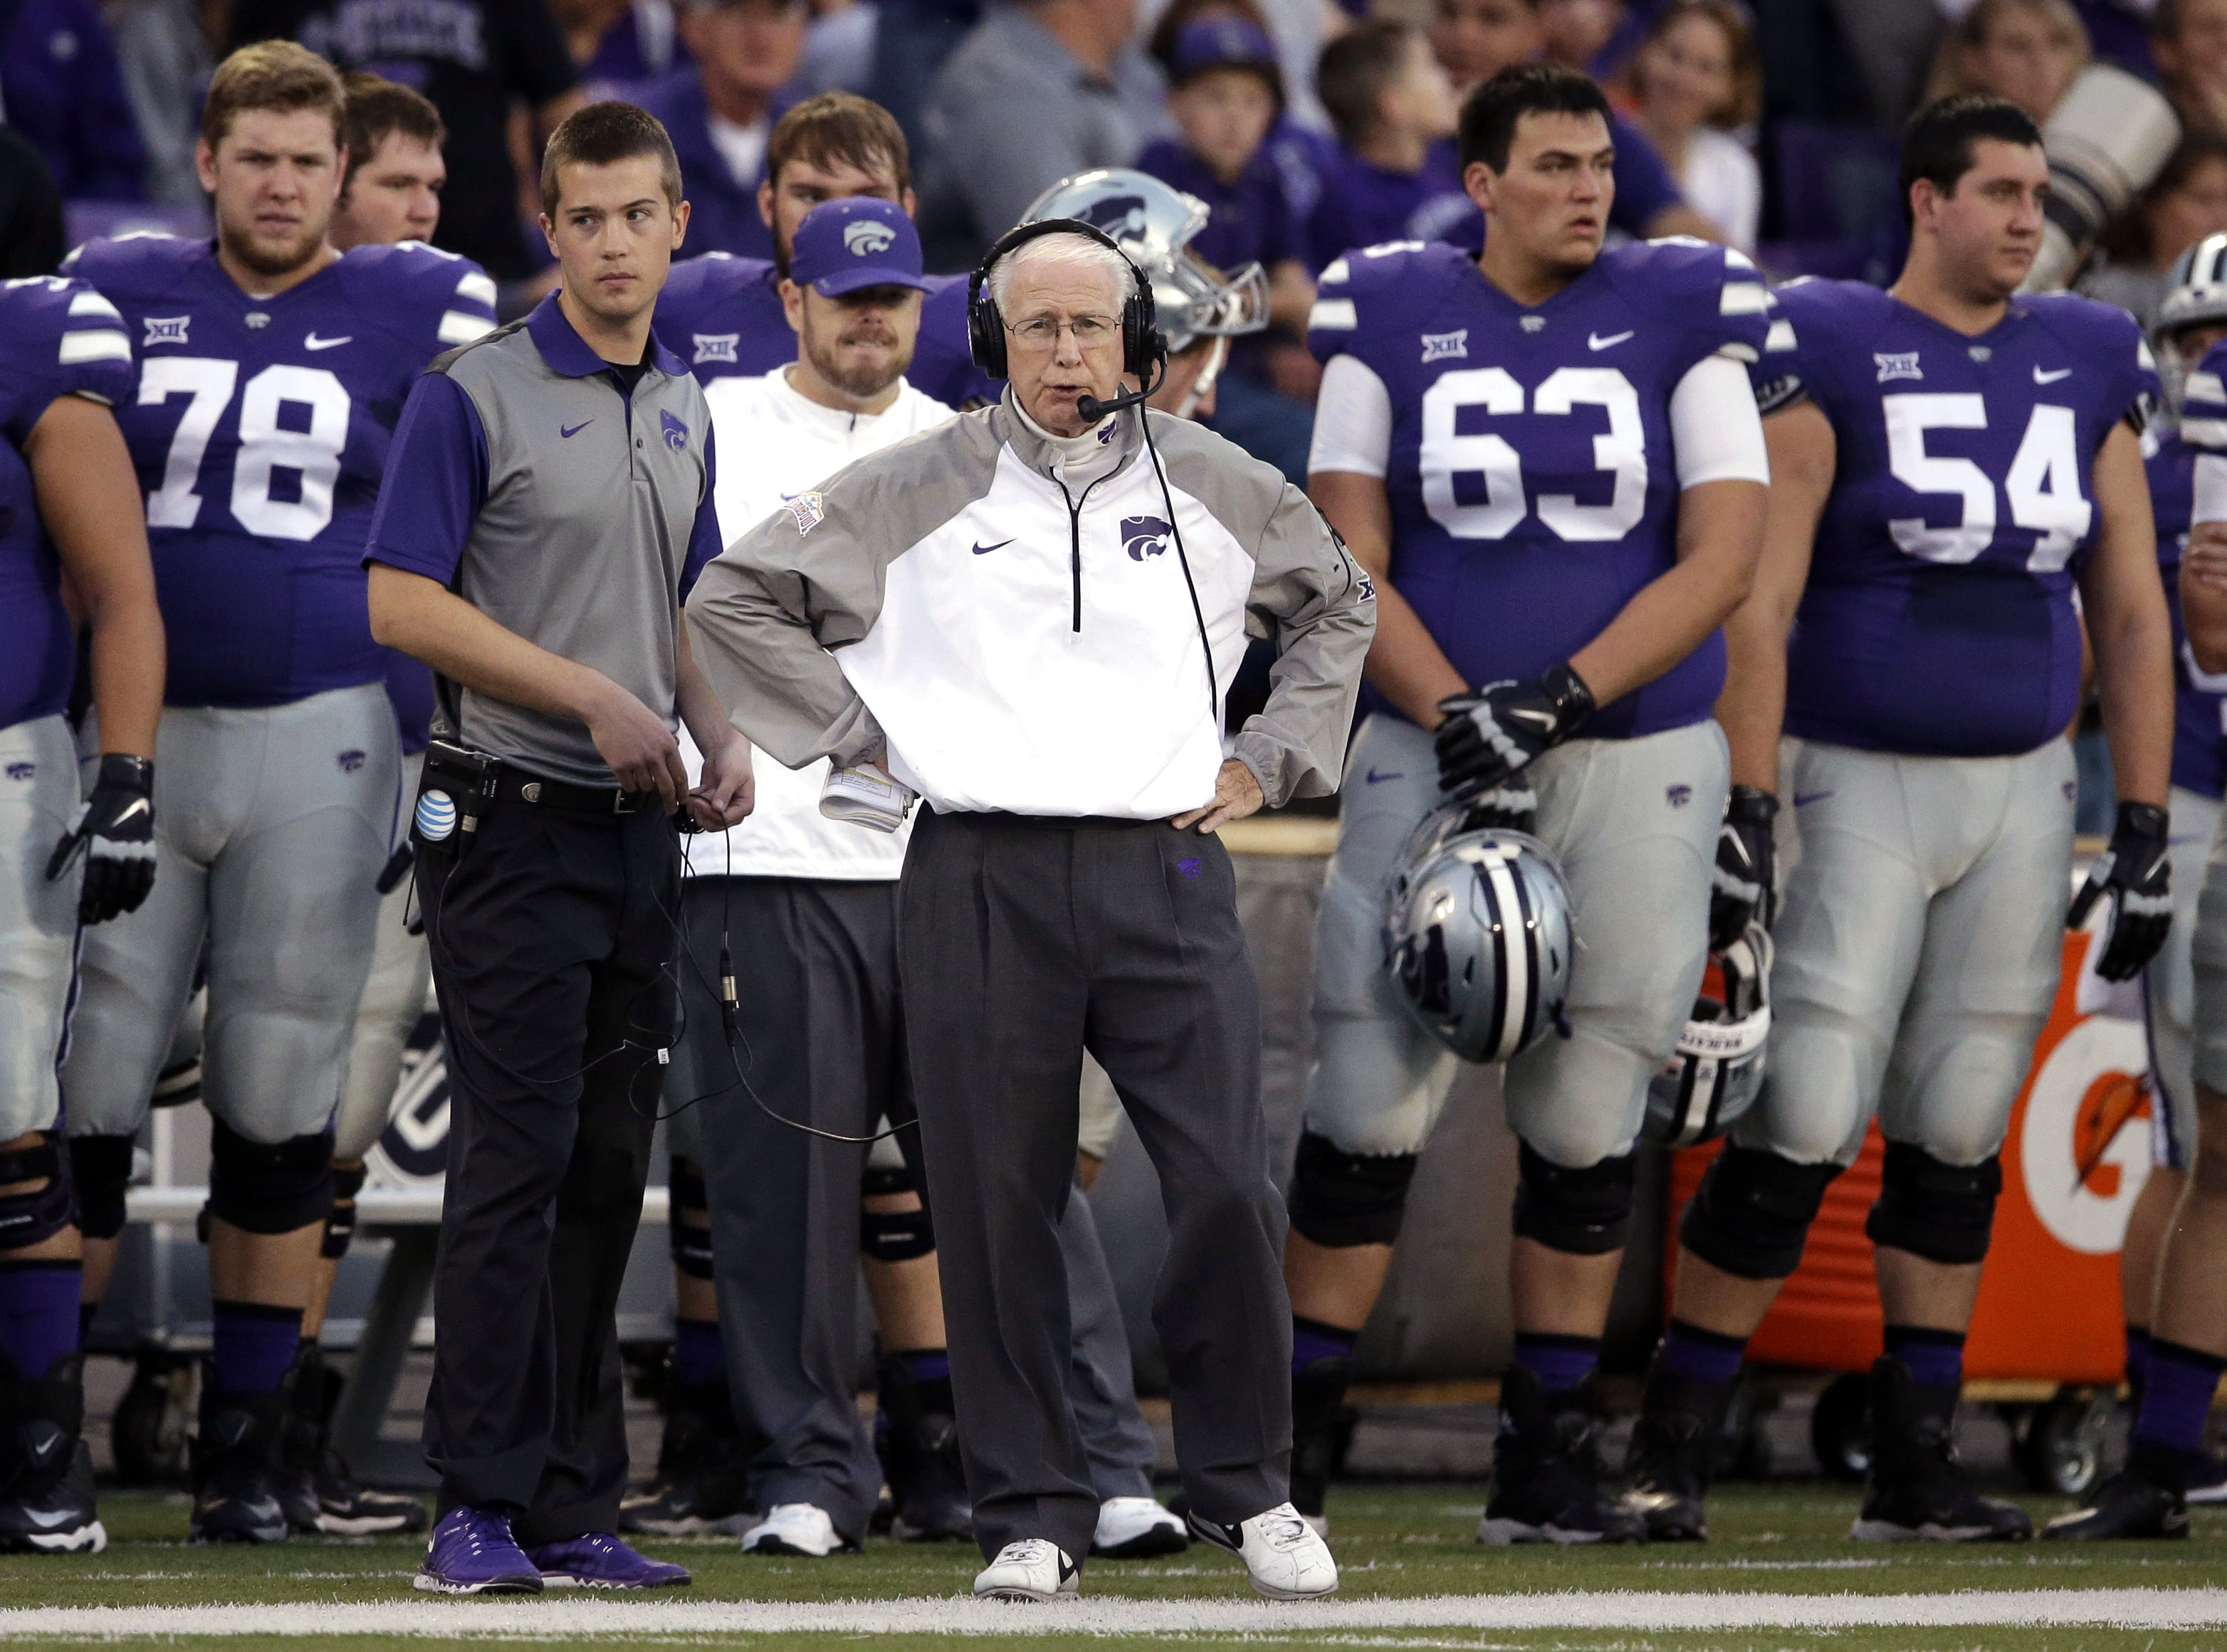 Kansas State head coach Bill Snyder, center, stands with his team during the first half of an NCAA college football game against TCU in Manhattan, Kan., Saturday, Oct. 10, 2015. (AP Photo/Orlin Wagner)